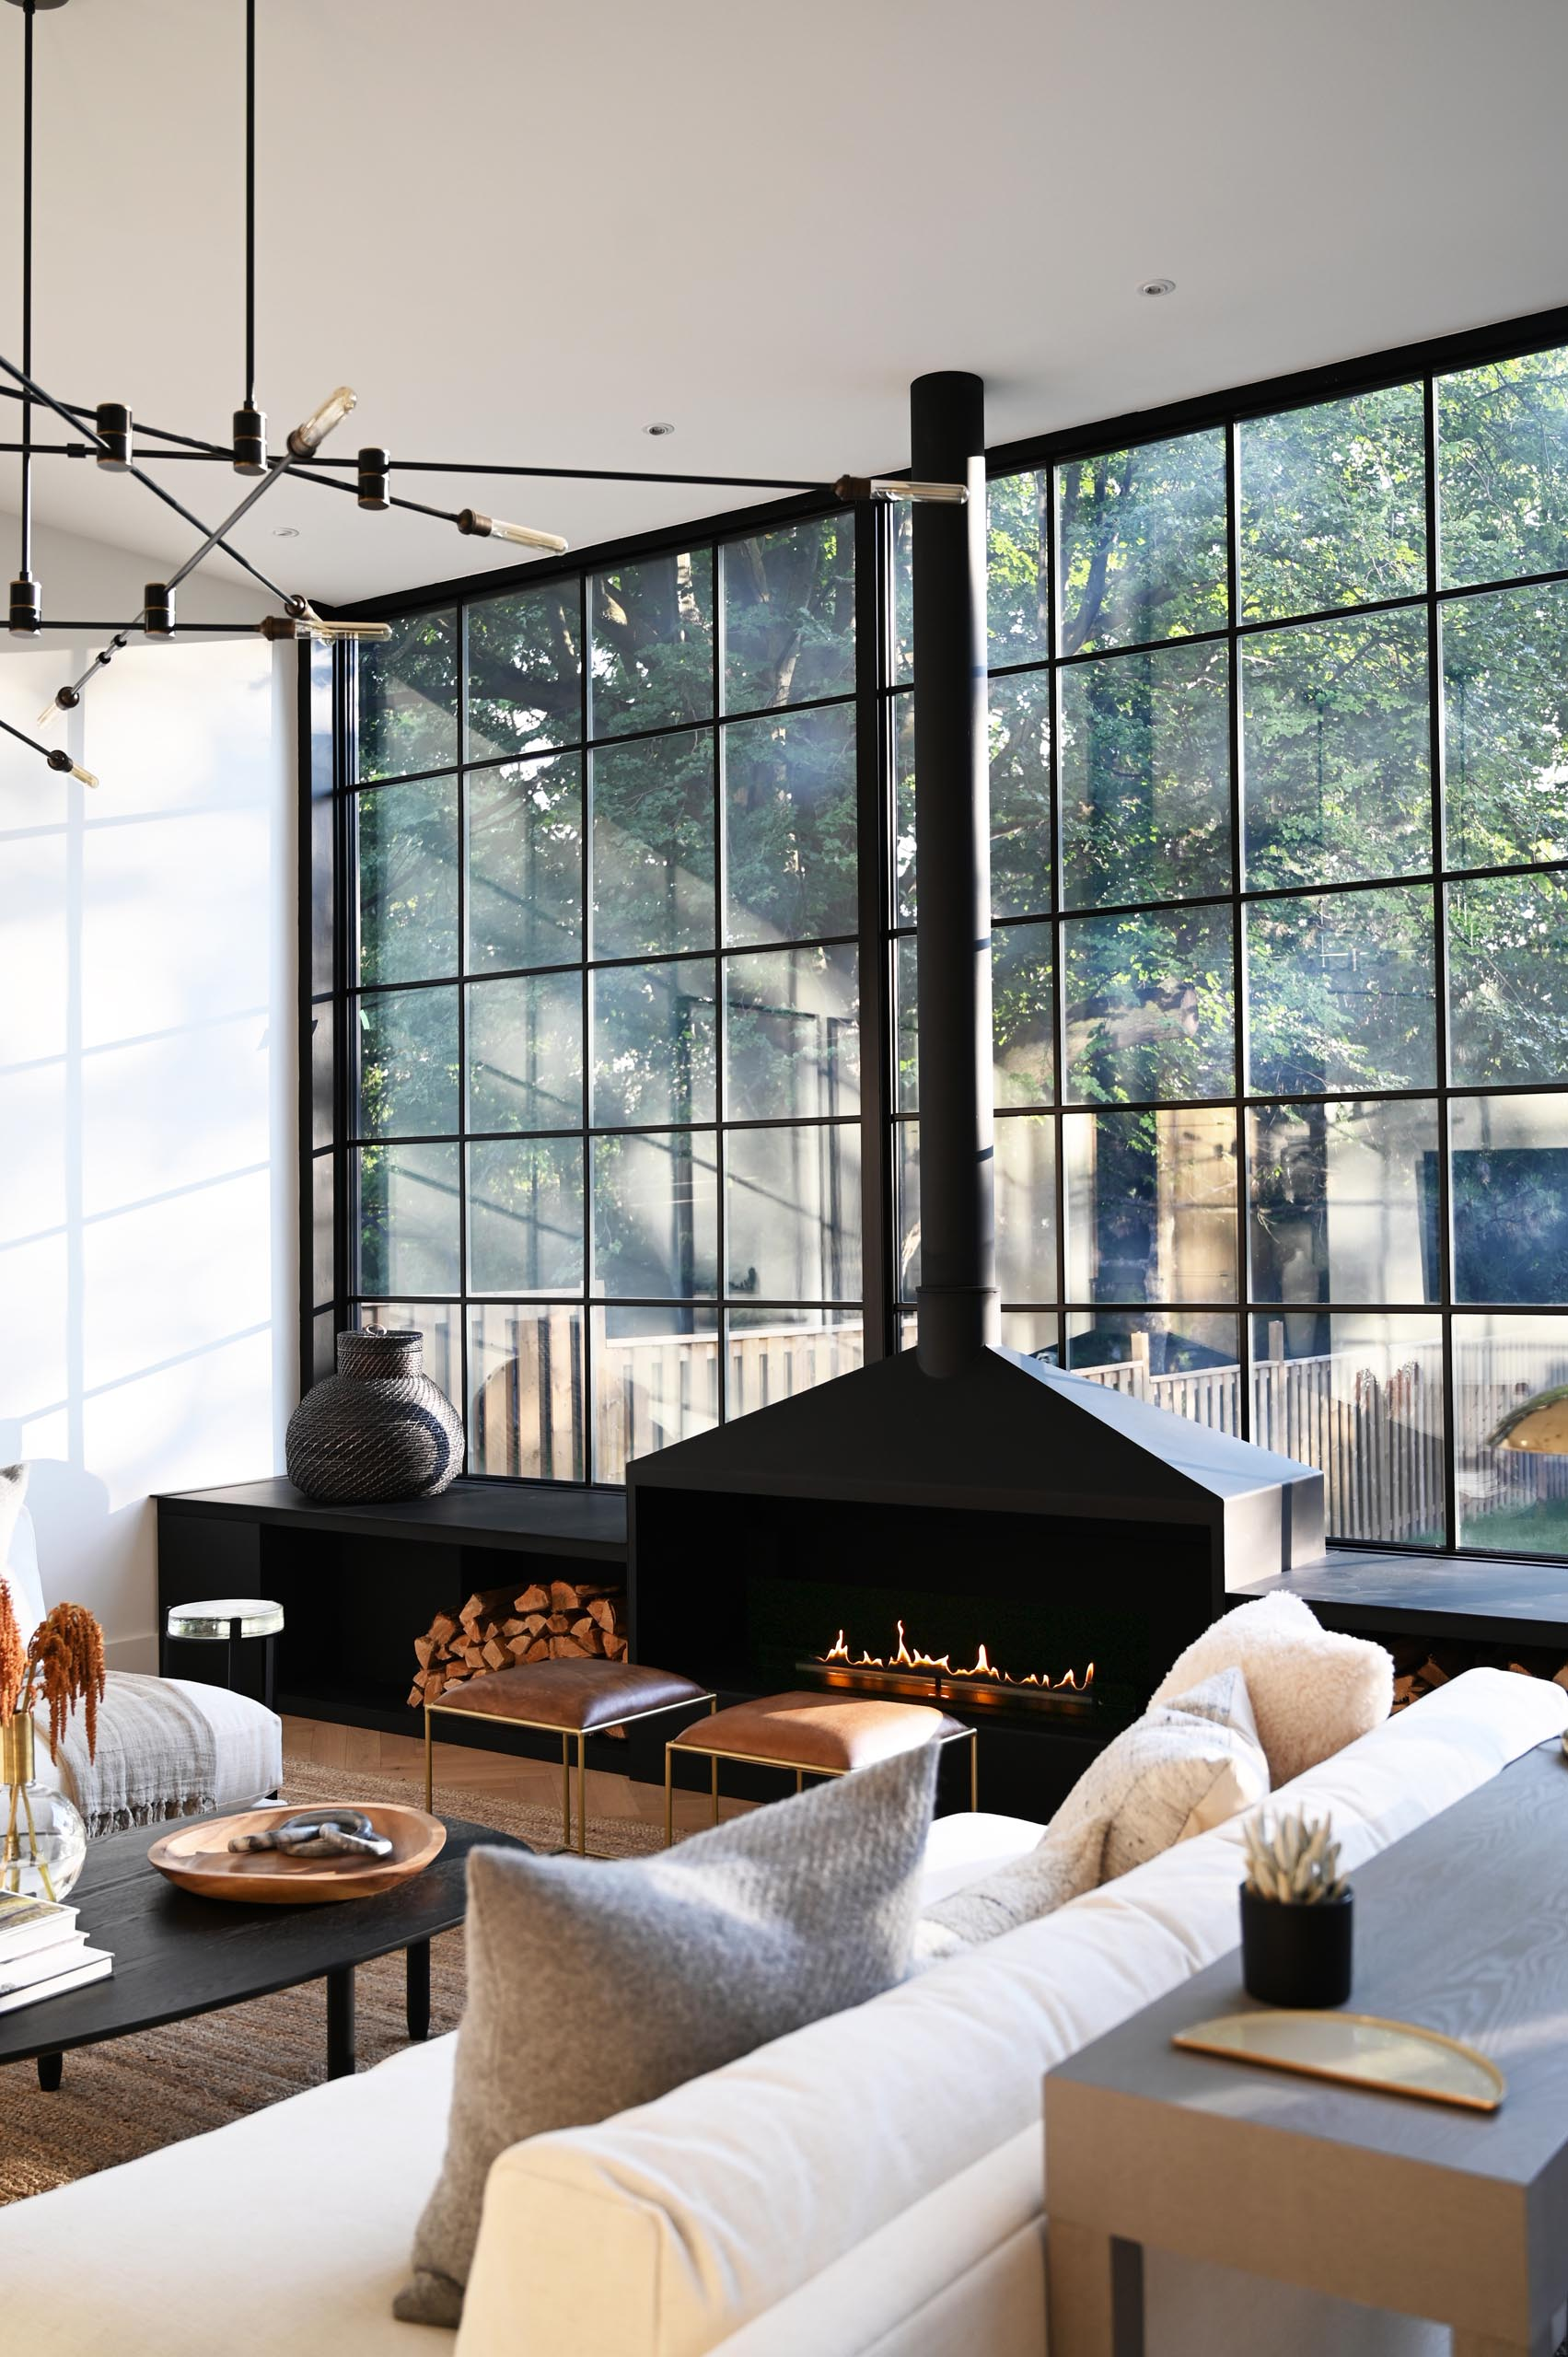 The expansive wall-to-wall black-framed windows and door frames complement the interior of the living room, that showcases a matte black fireplace and window bench. Also included in the design of the window bench is firewood storage.